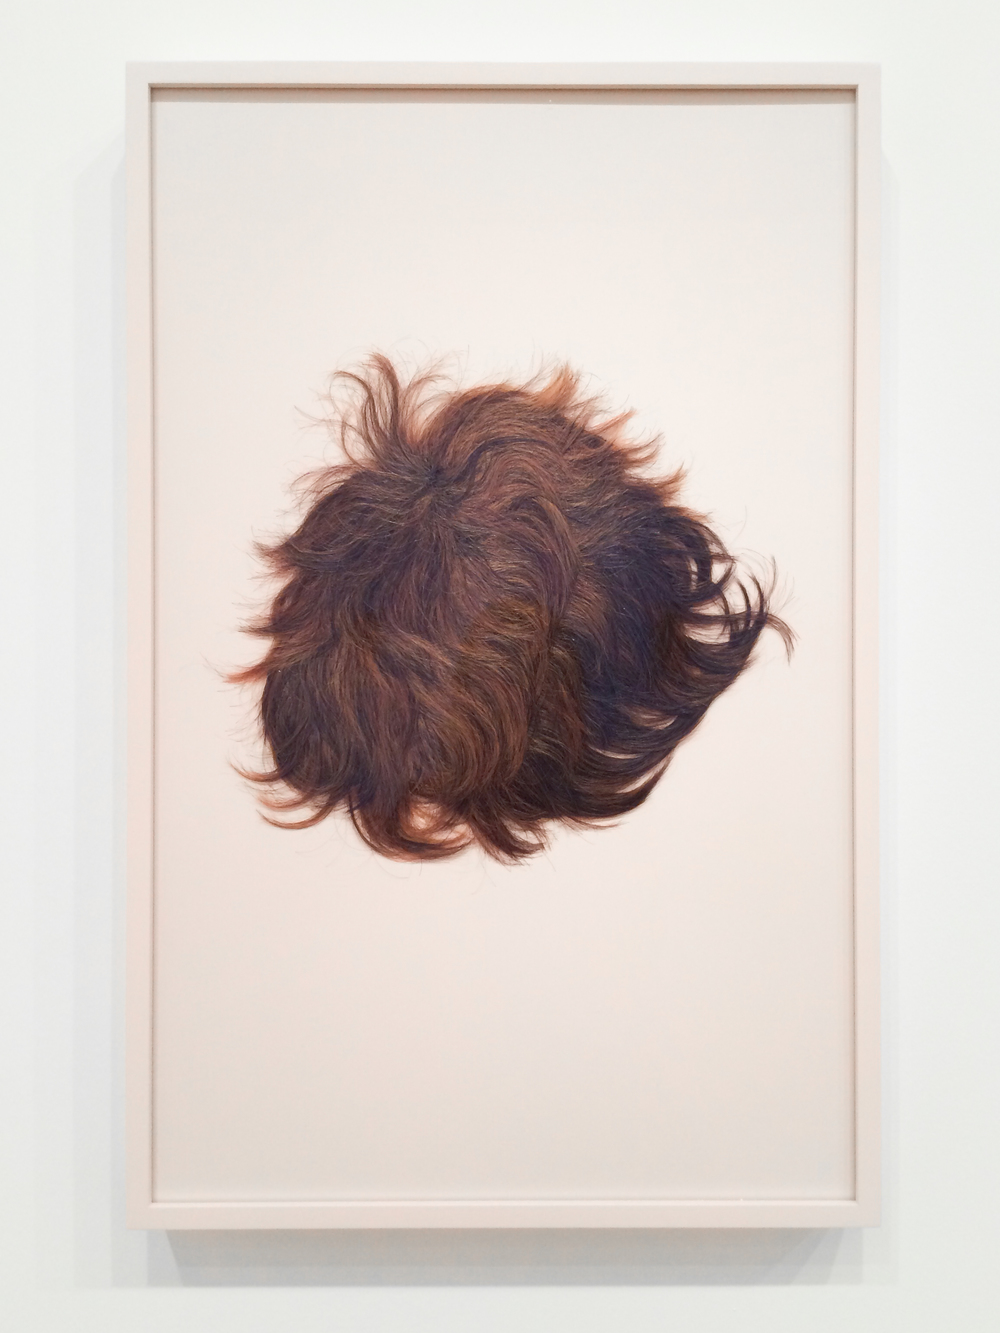 Nina Beier, Curtain Bang Crop, 2014. Human hair wig, painted frame, 42.2 x 65.10 x 5 cm. Courtesy de l'artiste et Metro Pictures, New York.